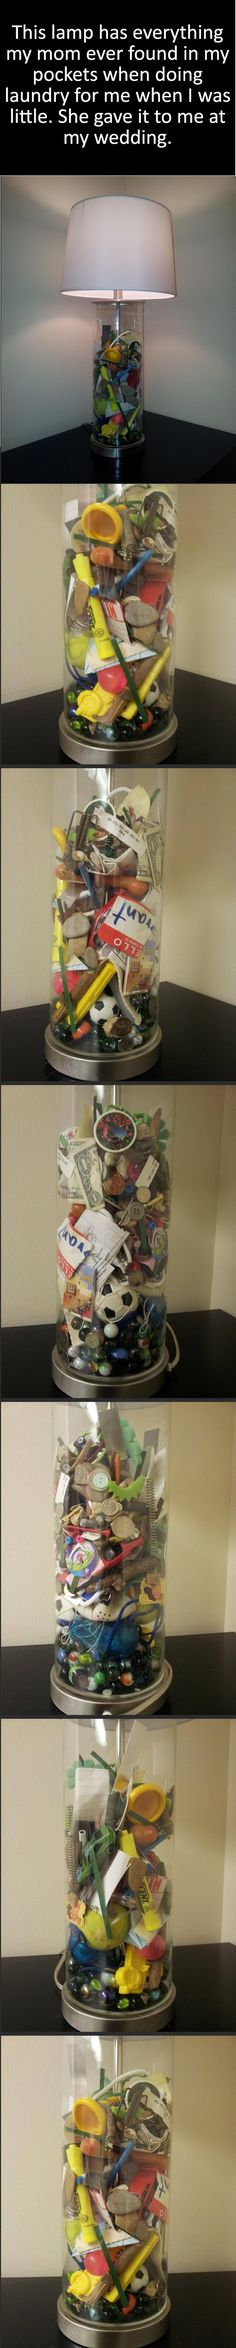 A mother saved all the things she found in her son's pockets when doing the laundry. She gave him this lamp with all things found for his wedding- wow! What an amazing idea!